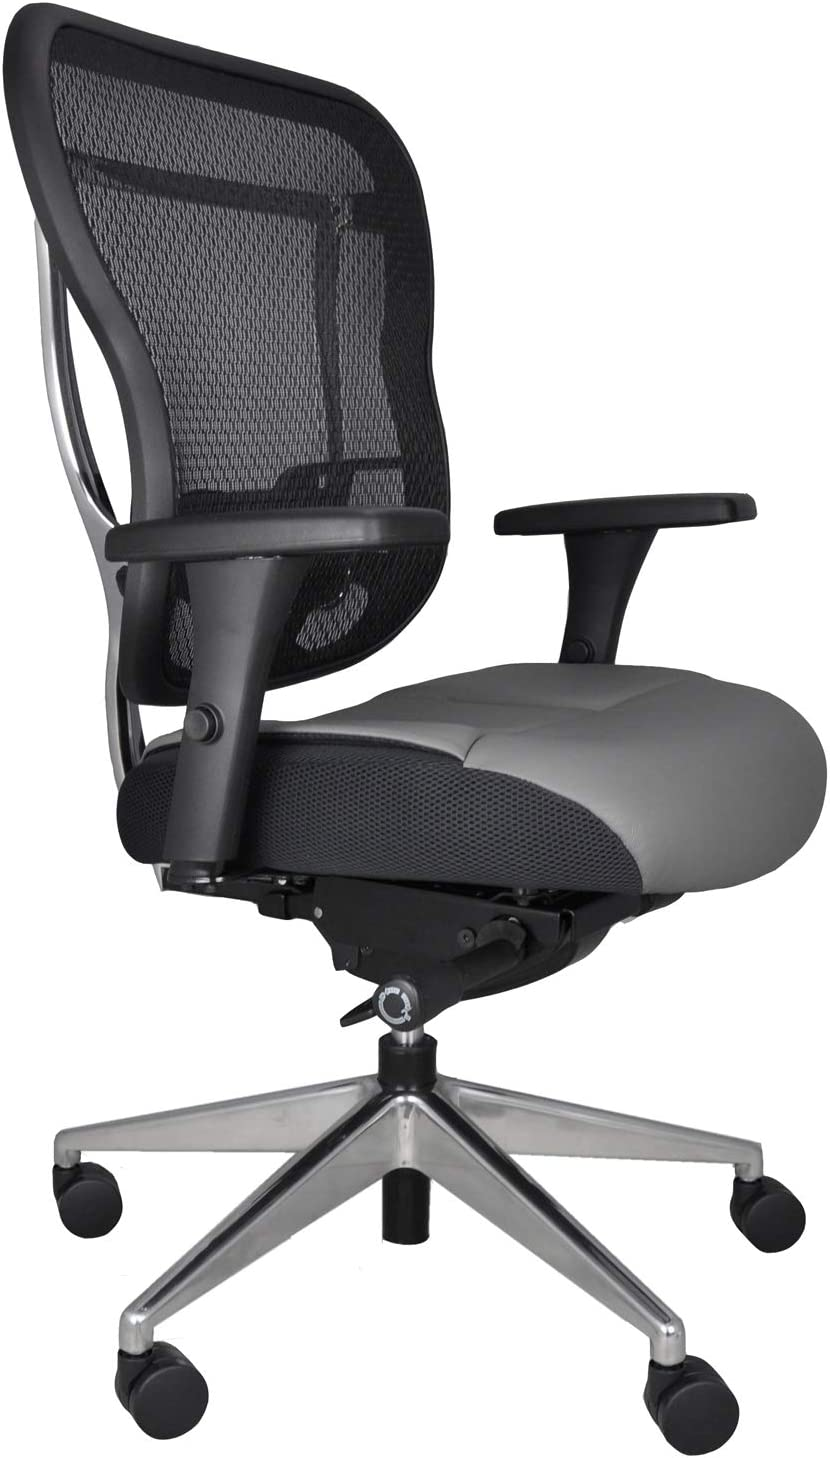 Oak Hollow Furniture Aloria Series Office Chair Ergonomic Executive Computer Chair with Genuine Leather Seat Cushion and Mesh Back, Adjustable and Comfortable, Lumbar Support, Swivel and Tilt (Gray)